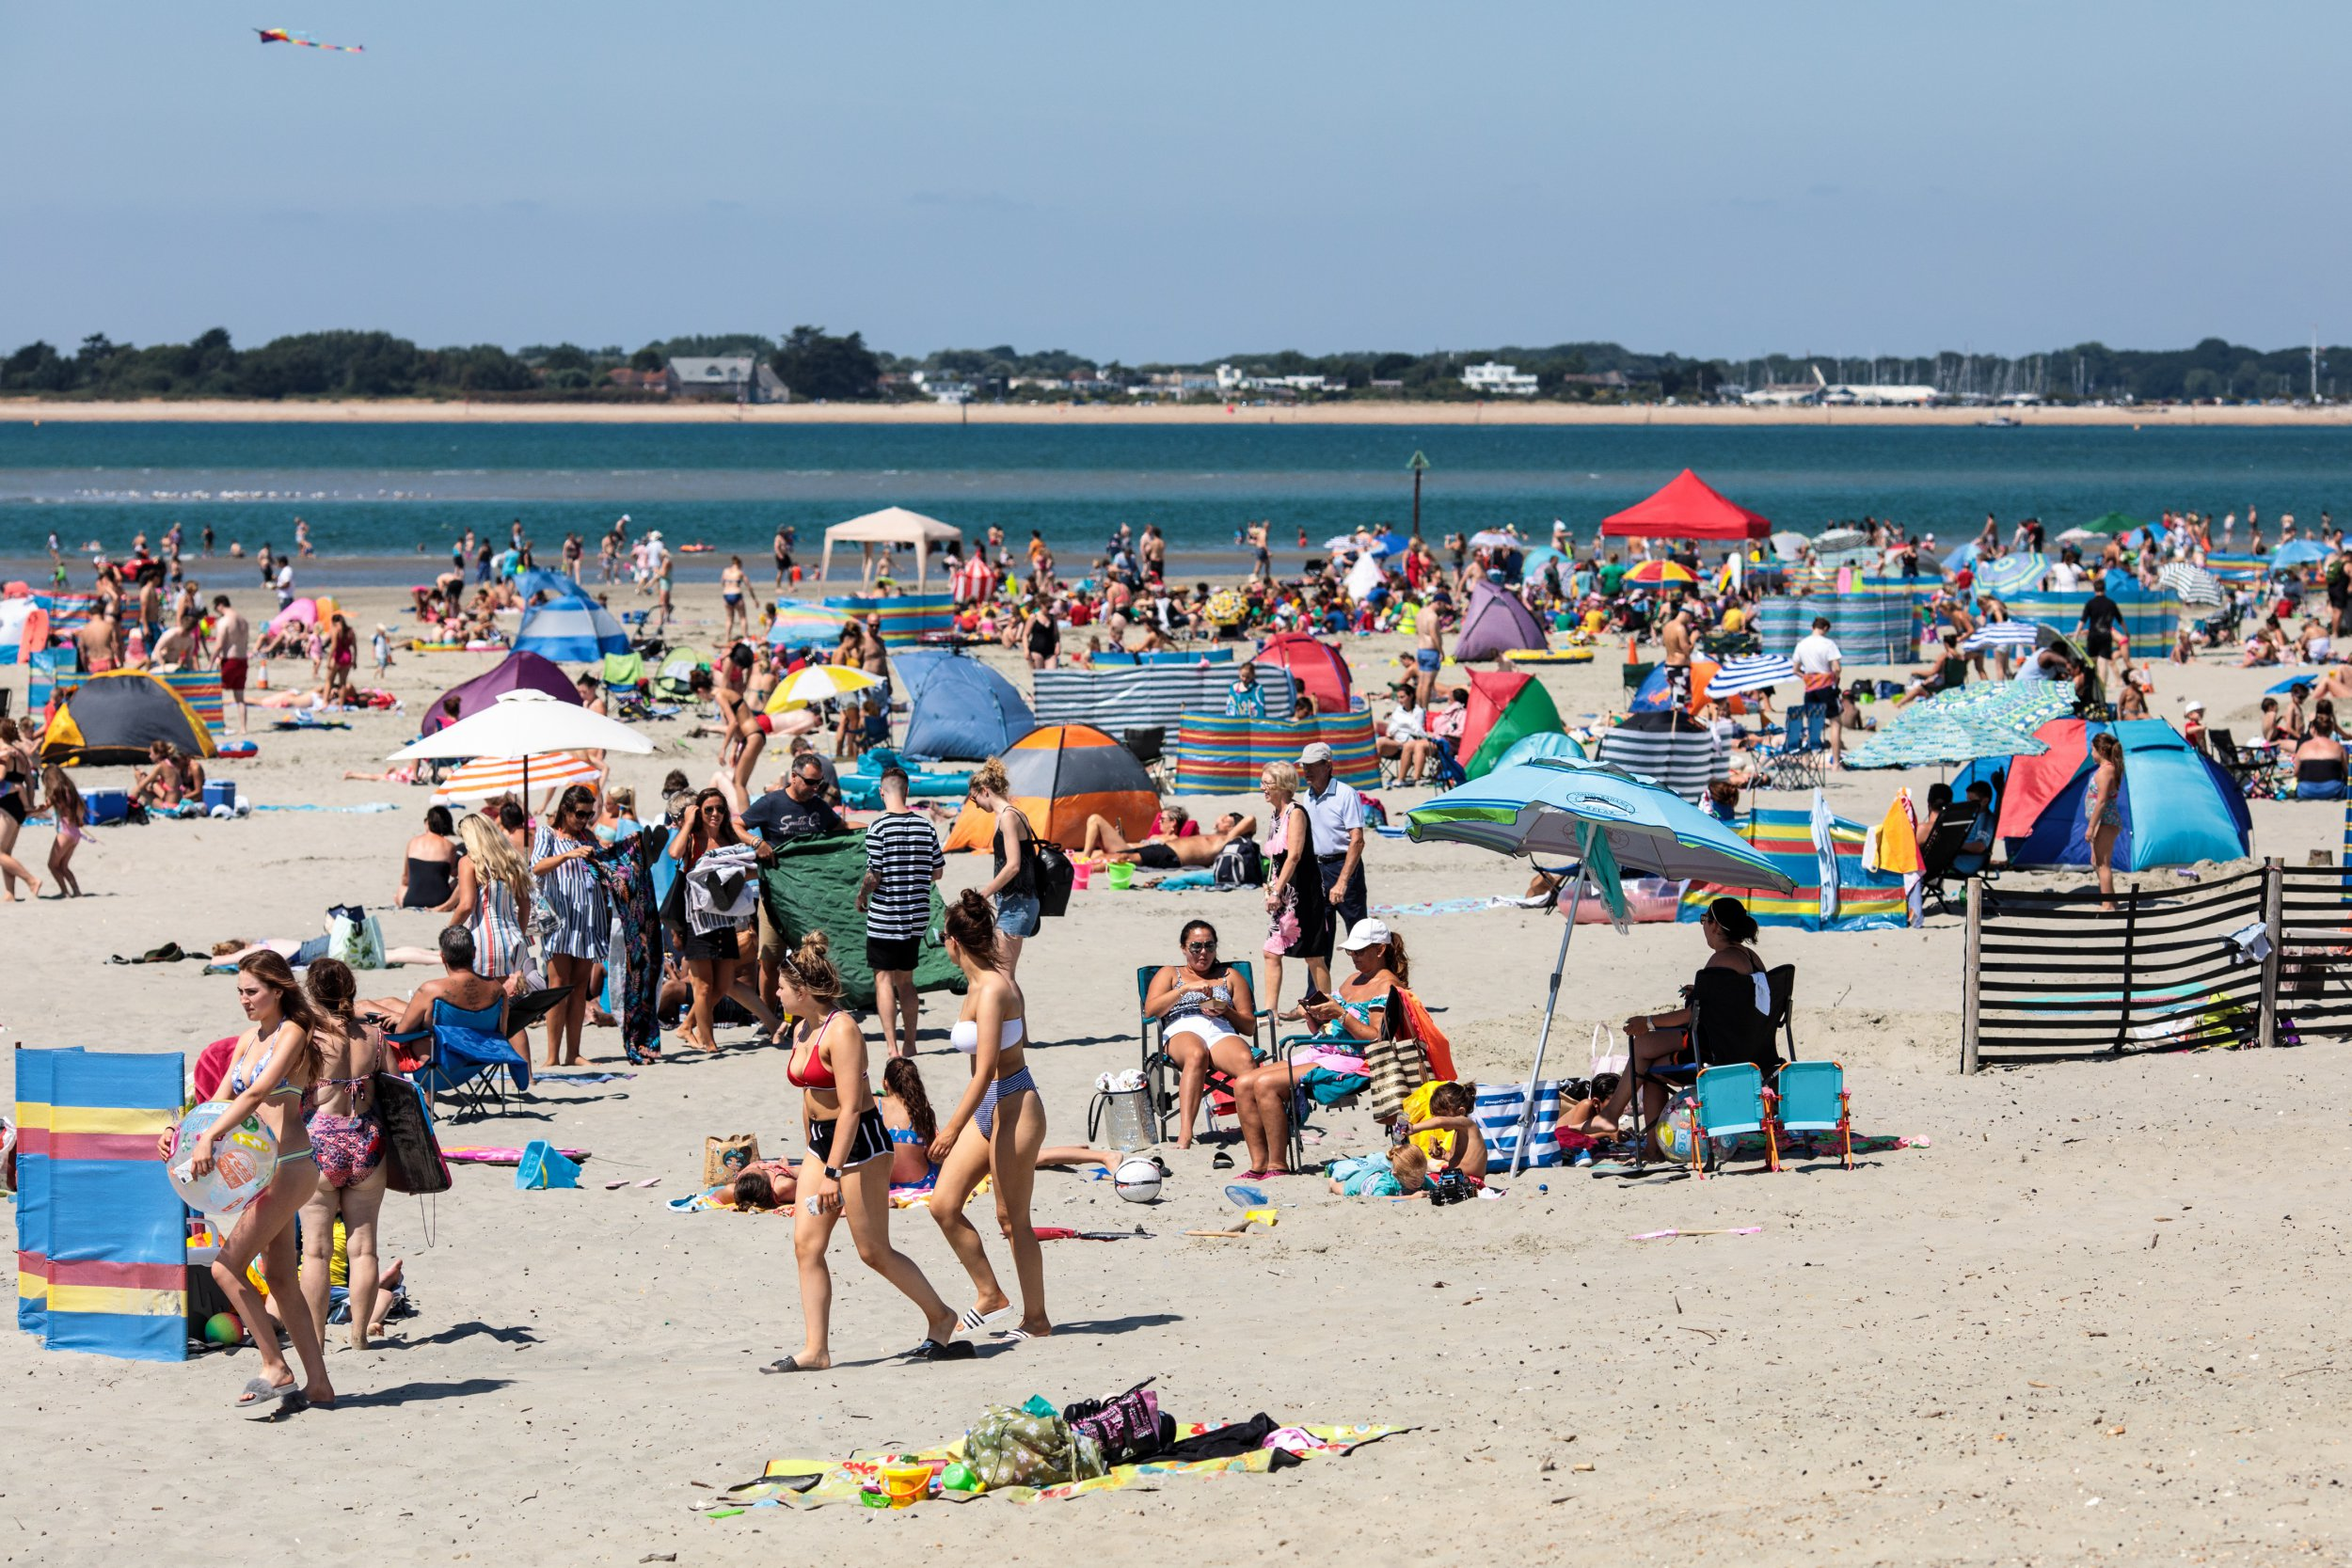 CHICHESTER, ENGLAND - JULY 23: Beachgoers gather on West Wittering Beach during hot weather on the first day of the Summer school holidays on July 23, 2018 in Chichester, England. Today has been the hottest day of 2018 with temperatures rising to 33.3 degrees celsius in some areas. The Met Office have issued an amber weather warning to stay out of the sun between now and Friday as temperatures could continue to rise to 35 degrees celsius. (Photo by Jack Taylor/Getty Images)